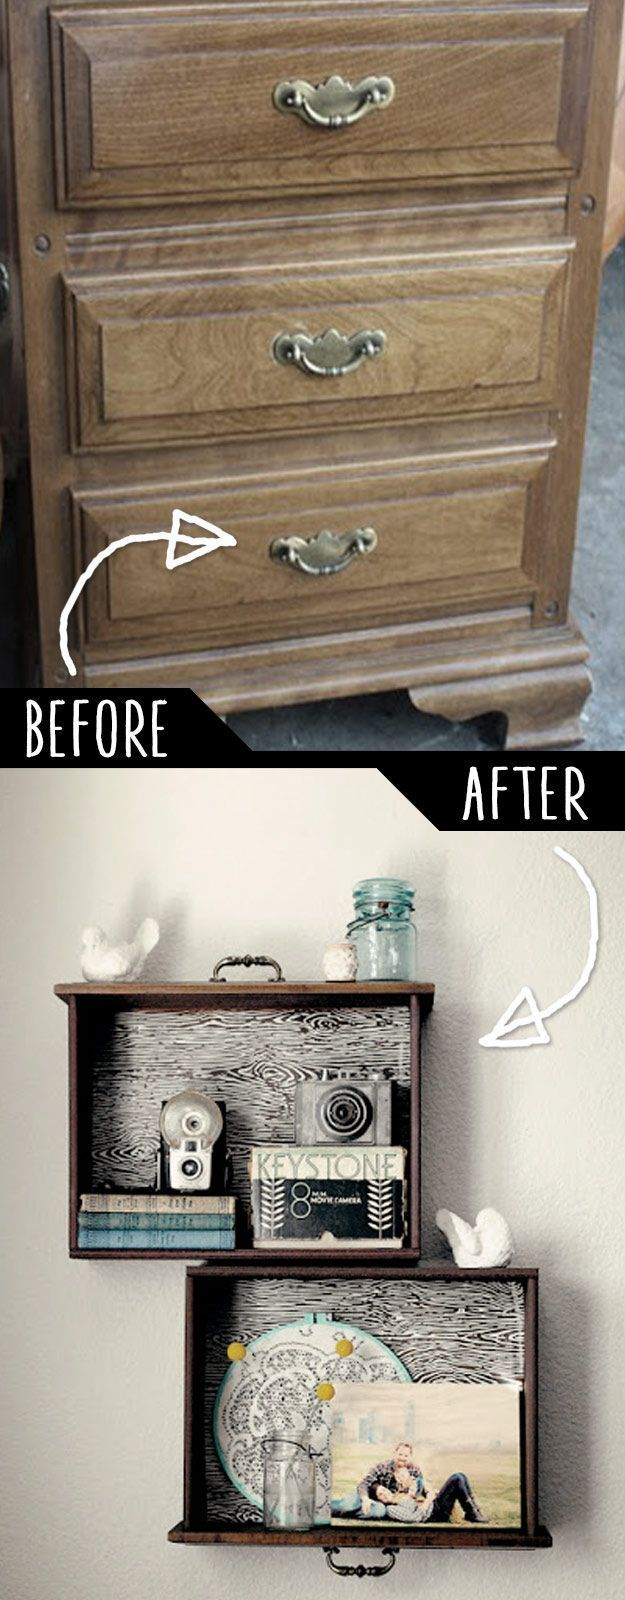 Best 25 Cheap Home Decor Ideas On Pinterest Cheap Room Decor Cheap Bedroom Makeover And Cheap Bedroom Decor